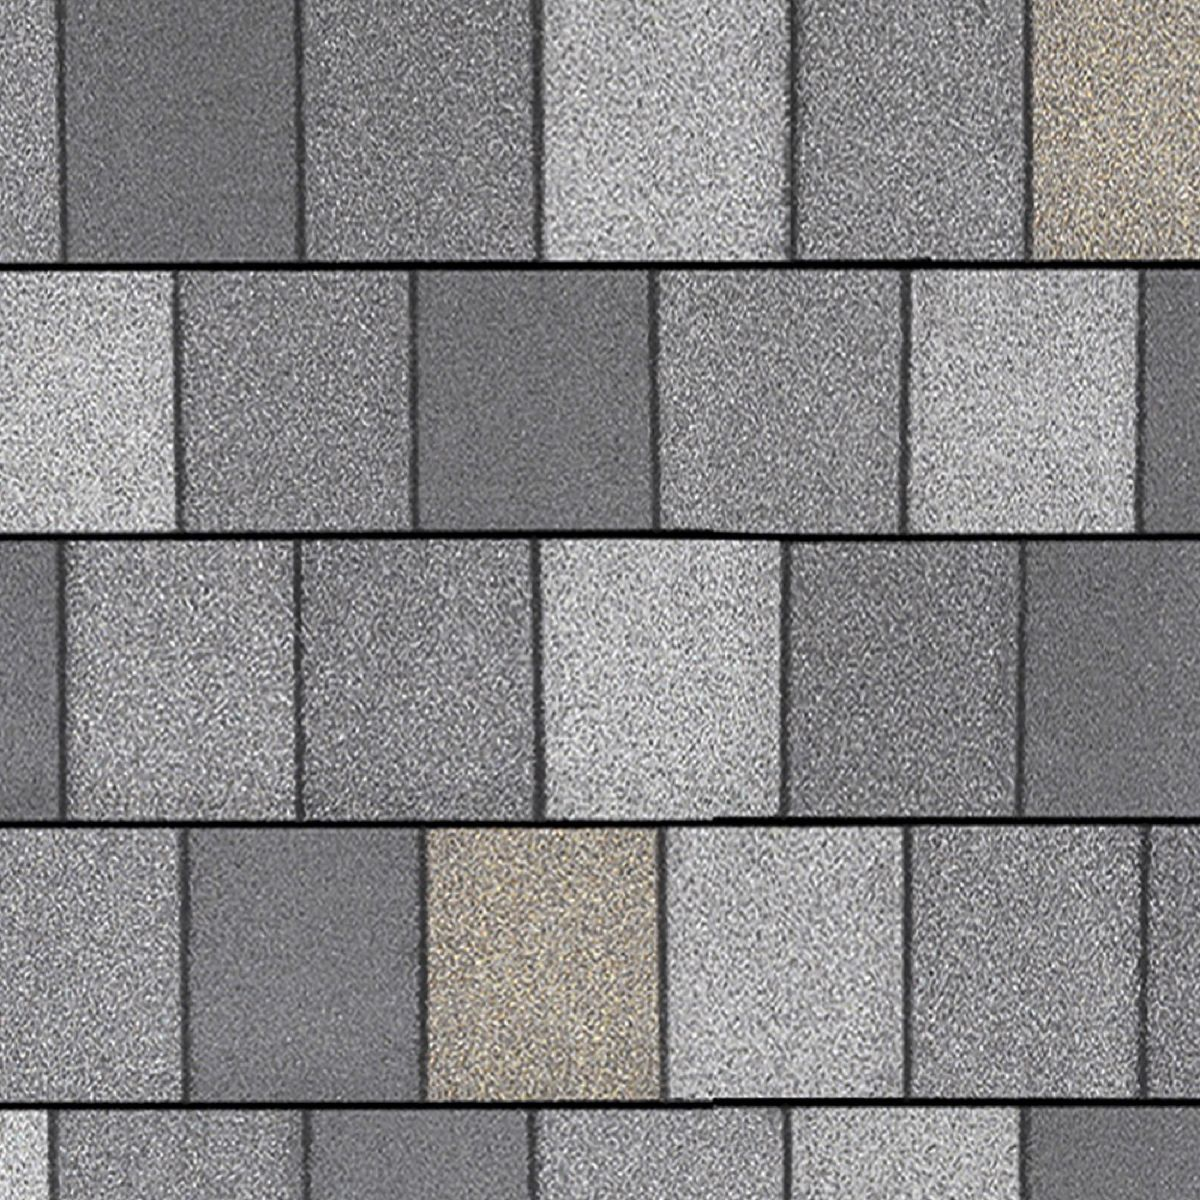 IKO Crowne Slate Premium Shingles Regal Stone